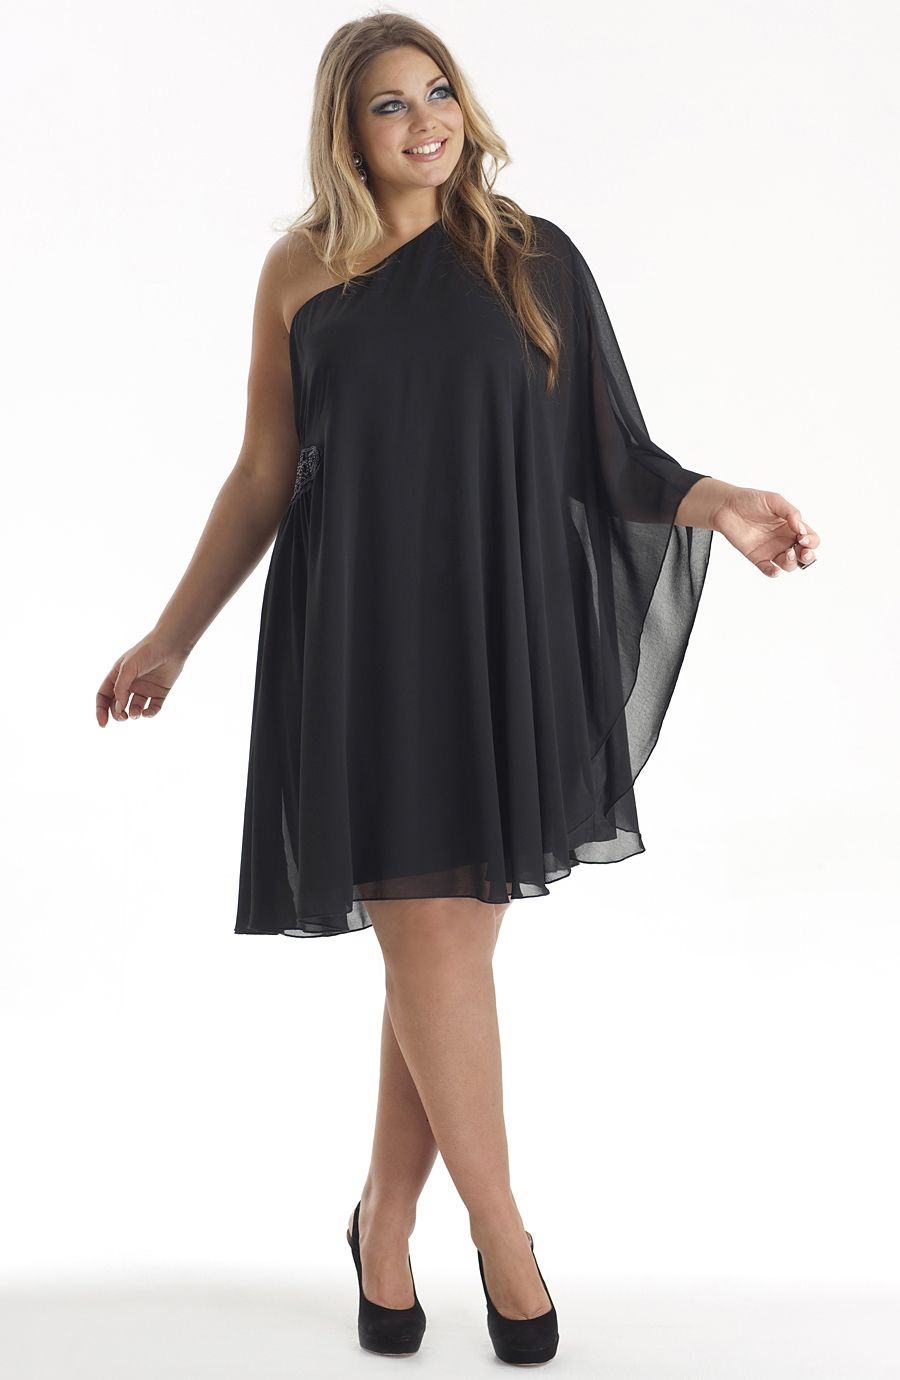 ce4bbbb3e08 Dresses - Evening Dresses - Plus Size & Larger Sizes Womens Clothing ...